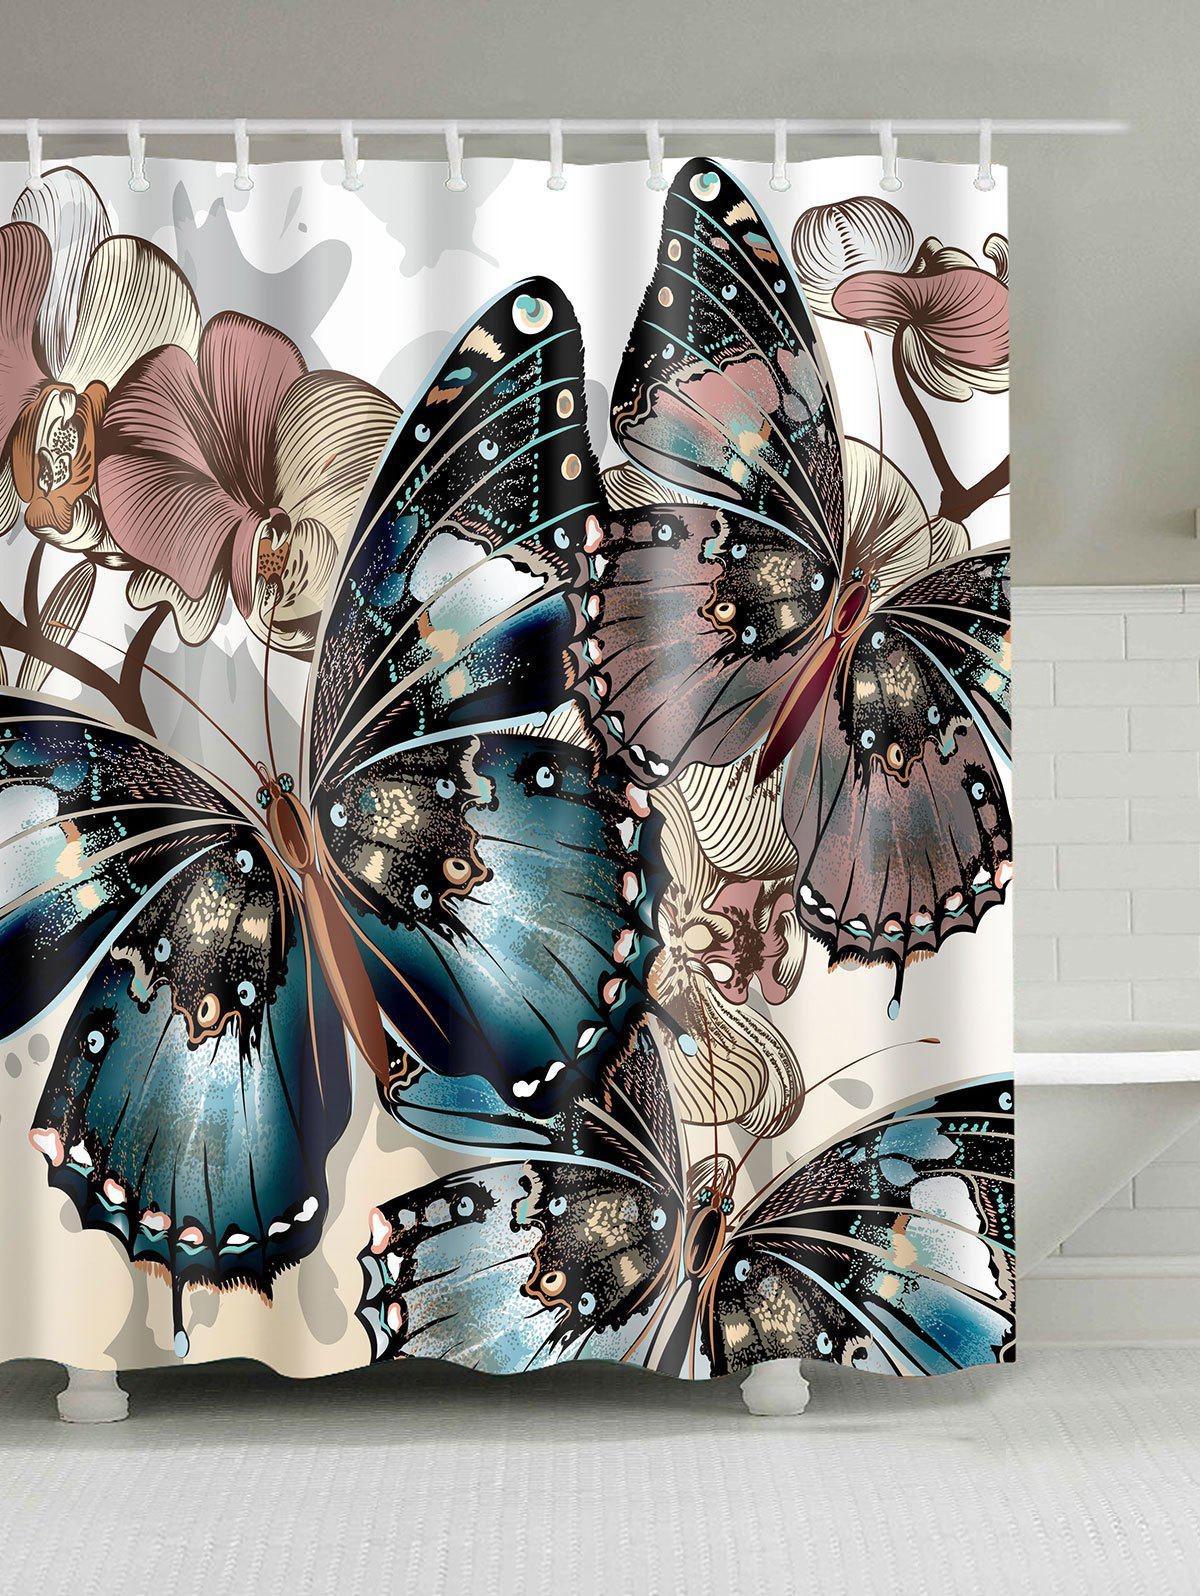 Butterfly Print Water Repellent Shower CurtainHOME<br><br>Size: W59 INCH * L71 INCH; Color: COLORMIX; Products Type: Shower Curtains; Materials: Polyester; Pattern: Insect; Style: Fashion; Number of Hook Holes: W59 inch*L71 inch: 10; W71 inch*L71 inch: 12; W71 inch*L79 inch: 12; Package Contents: 1 x Shower Curtain 1 x Hooks?Set?;